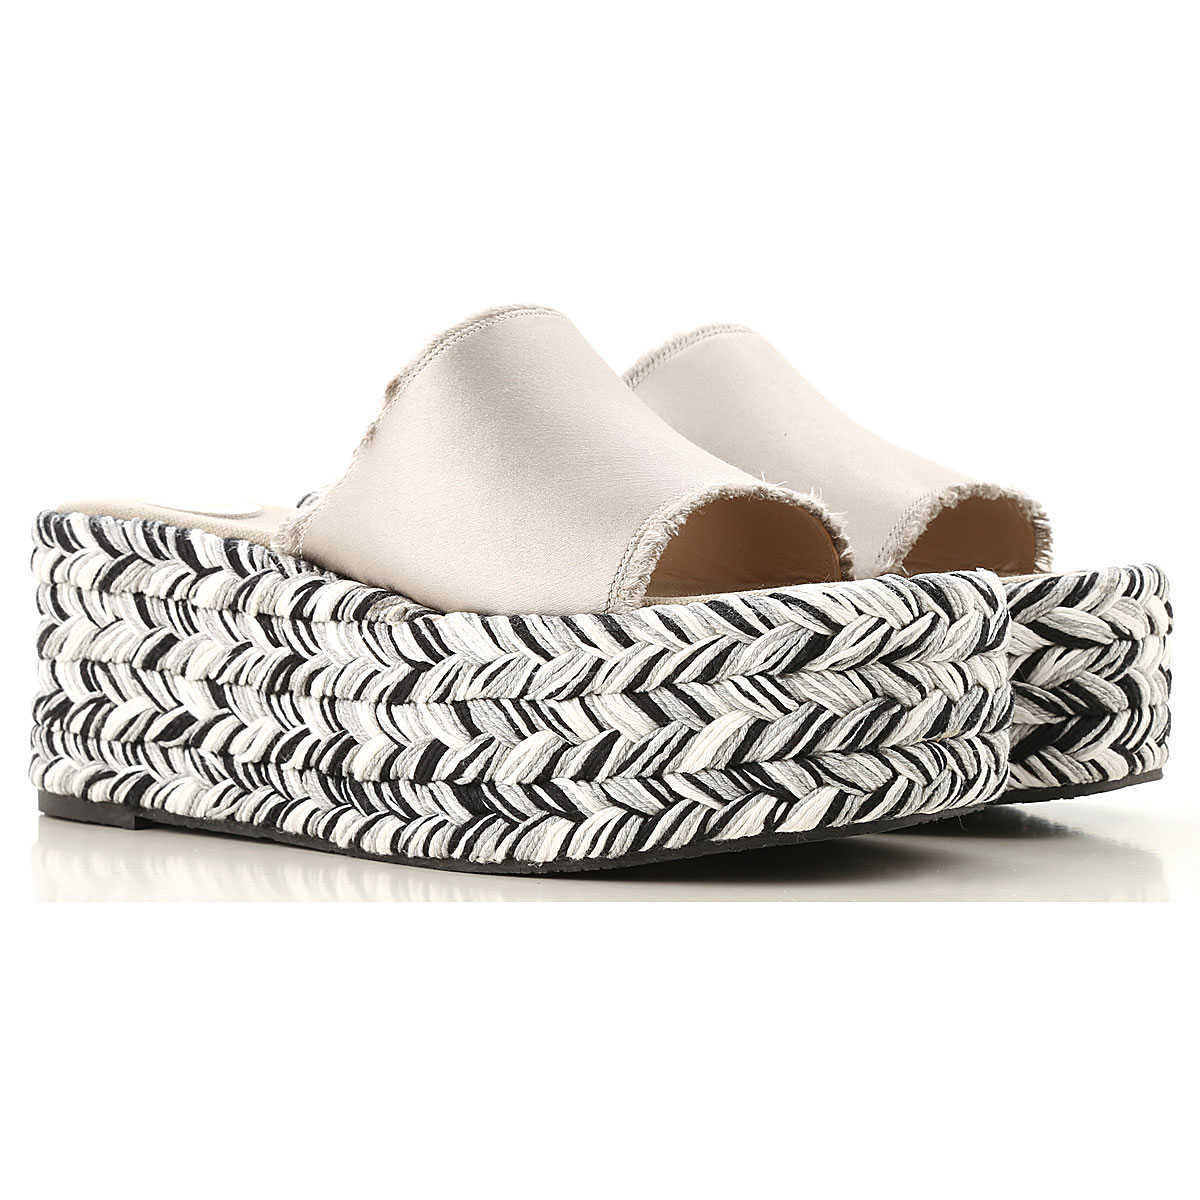 Ras Wedges for Women Silver Canada - GOOFASH - Womens HOUSE SHOES